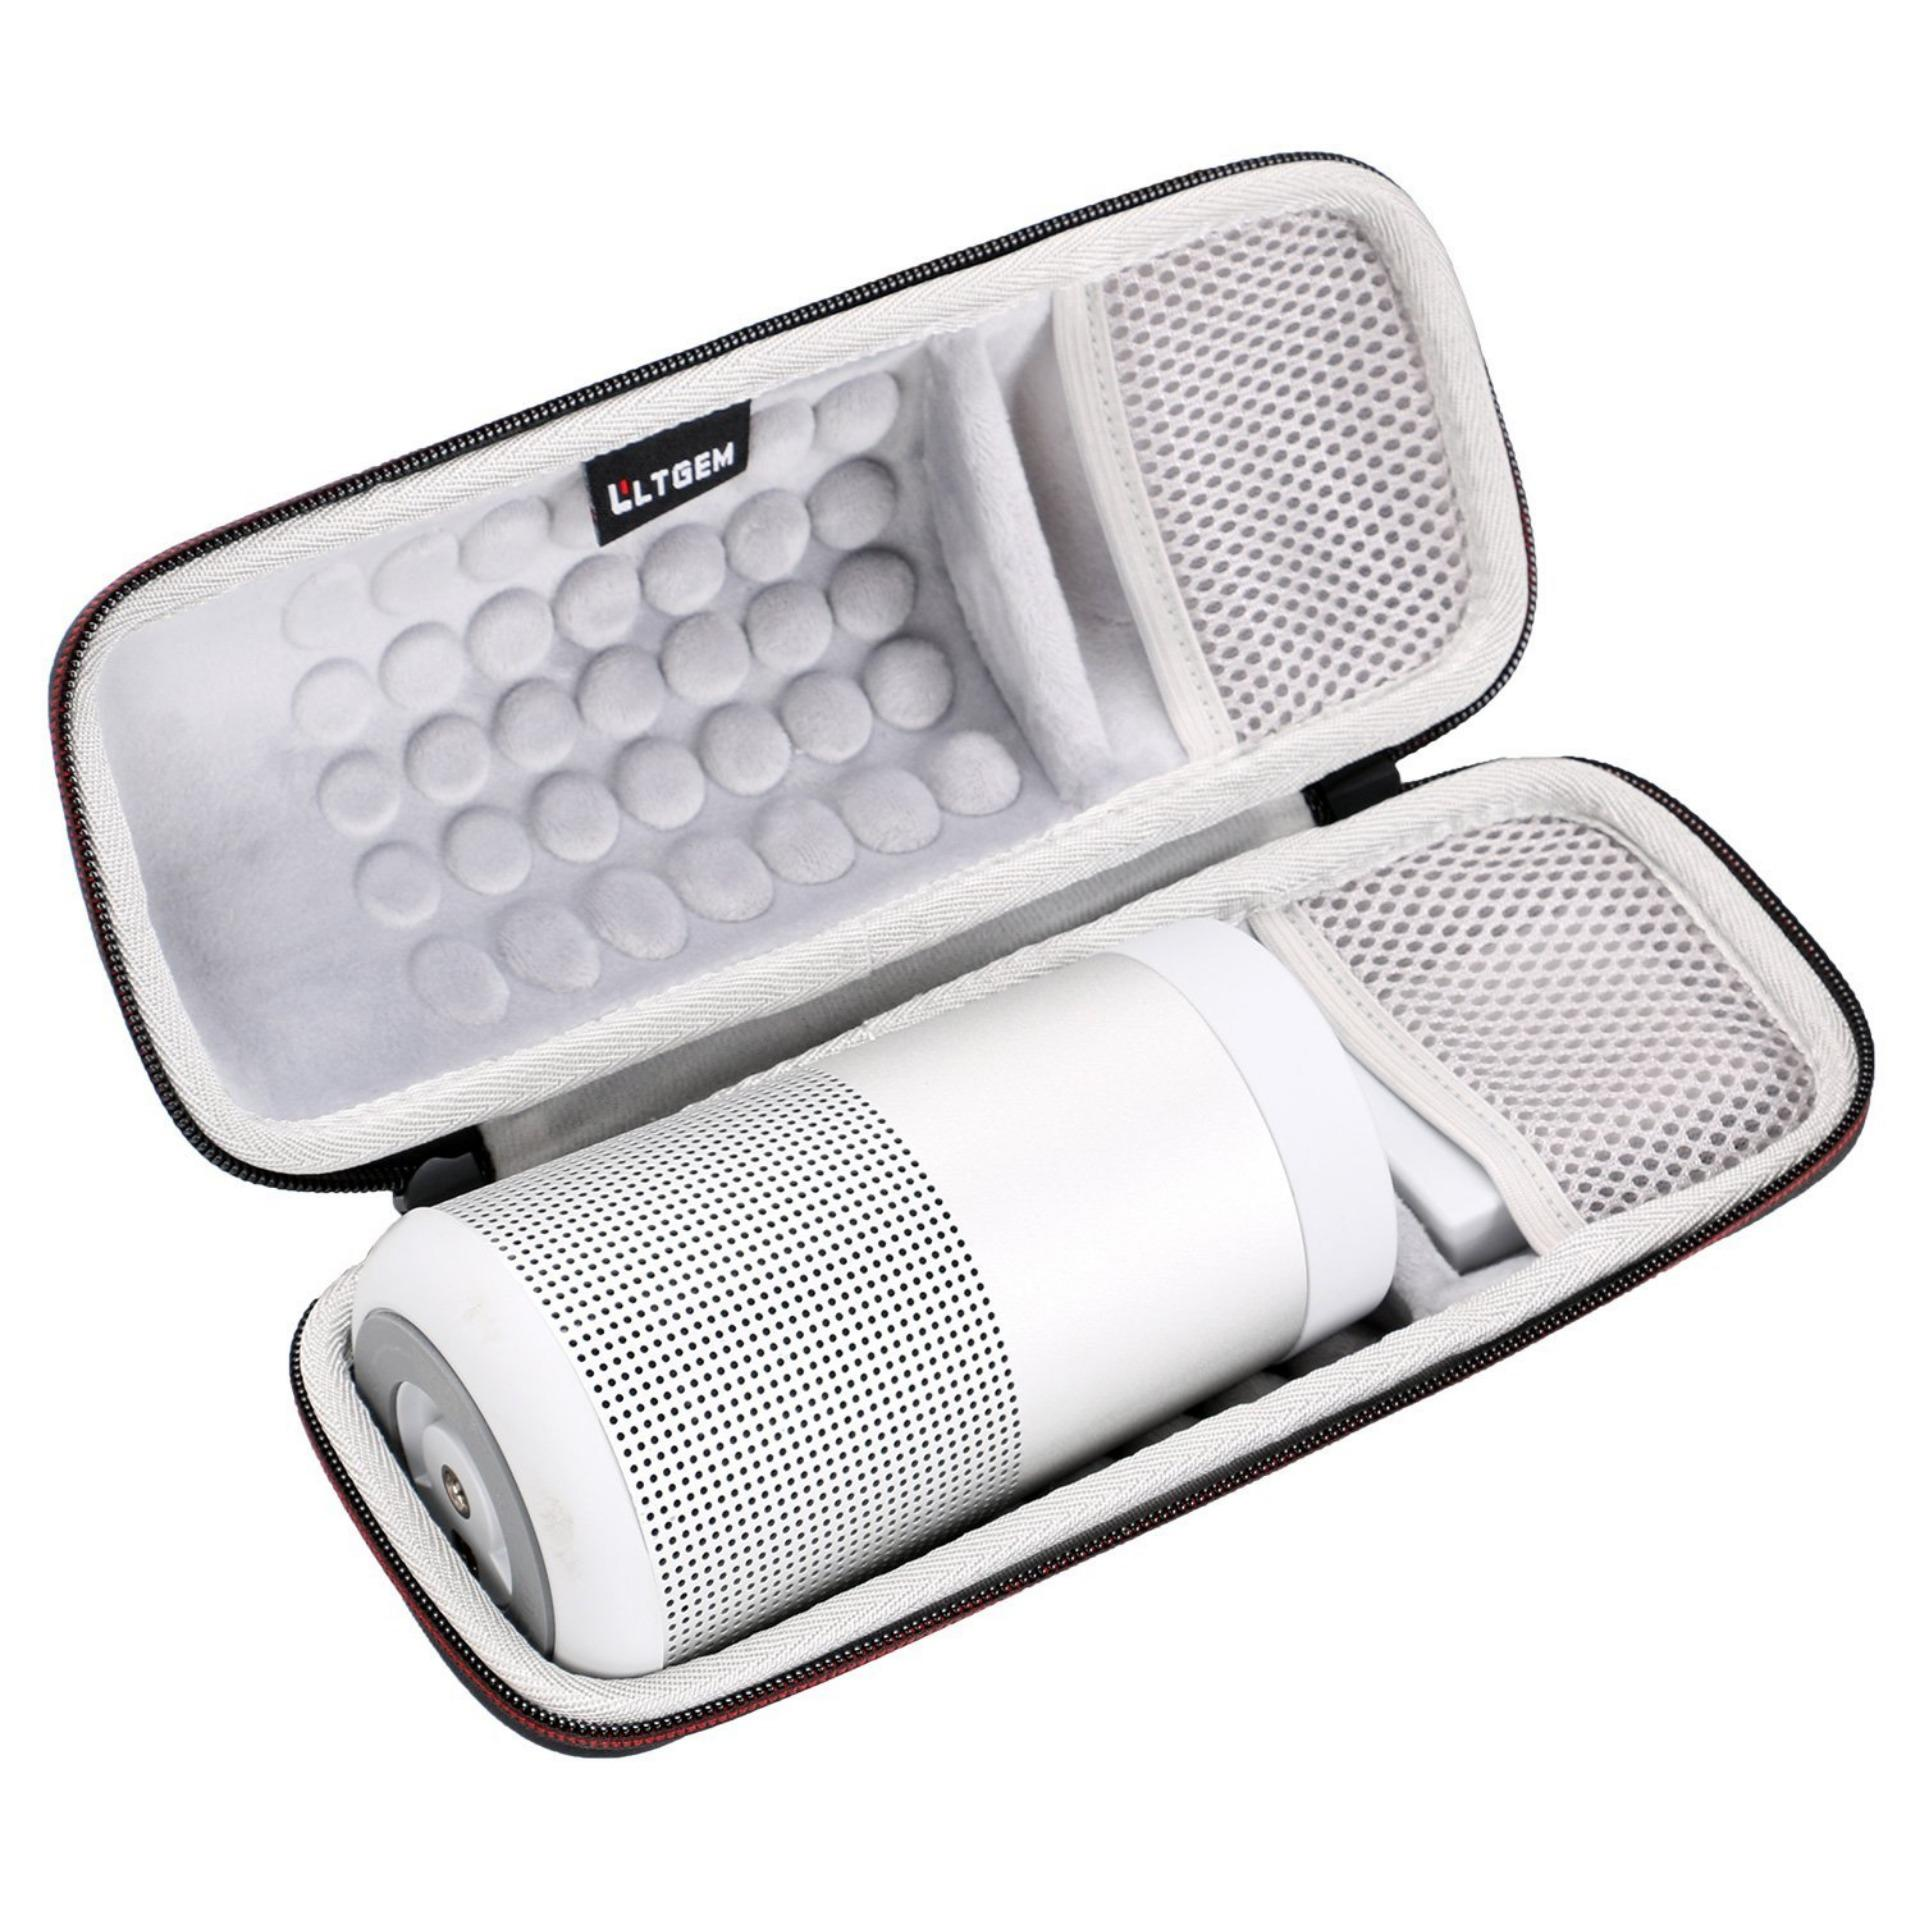 Brand New Ltgem Portable Hard Eva Case Protective Storage Carrying Bag Case For Revolve Bluetooth Speaker With Mesh Pocket Intl